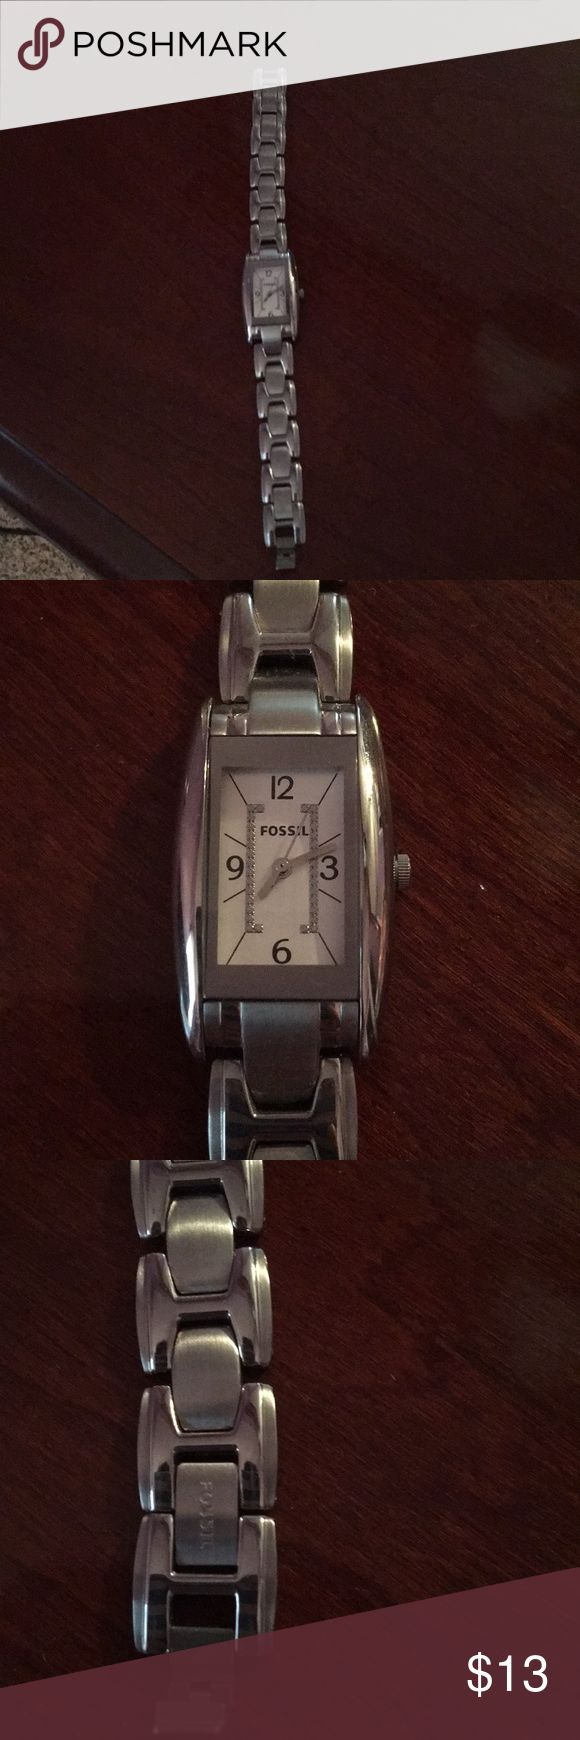 Fossil watch Silver Fossil watch. Needs battery Accessories Watches